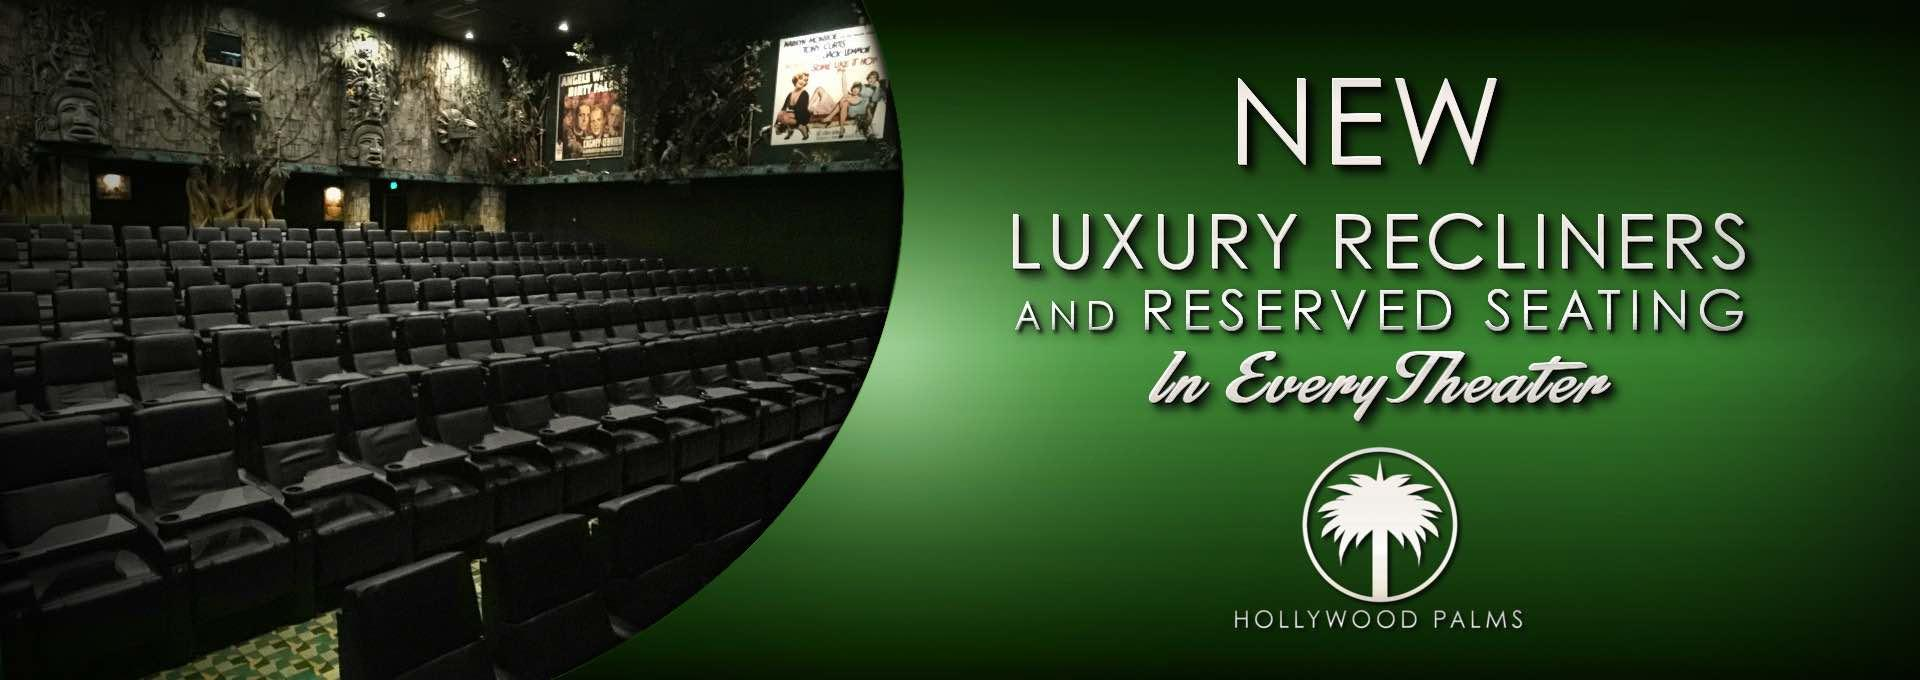 New Luxury Recliners at Hollywood Palms Cinema • Reclining Seats • Chicago • Naperville • Movies • Dining Out • Dinner • Movie • Wine • Beer